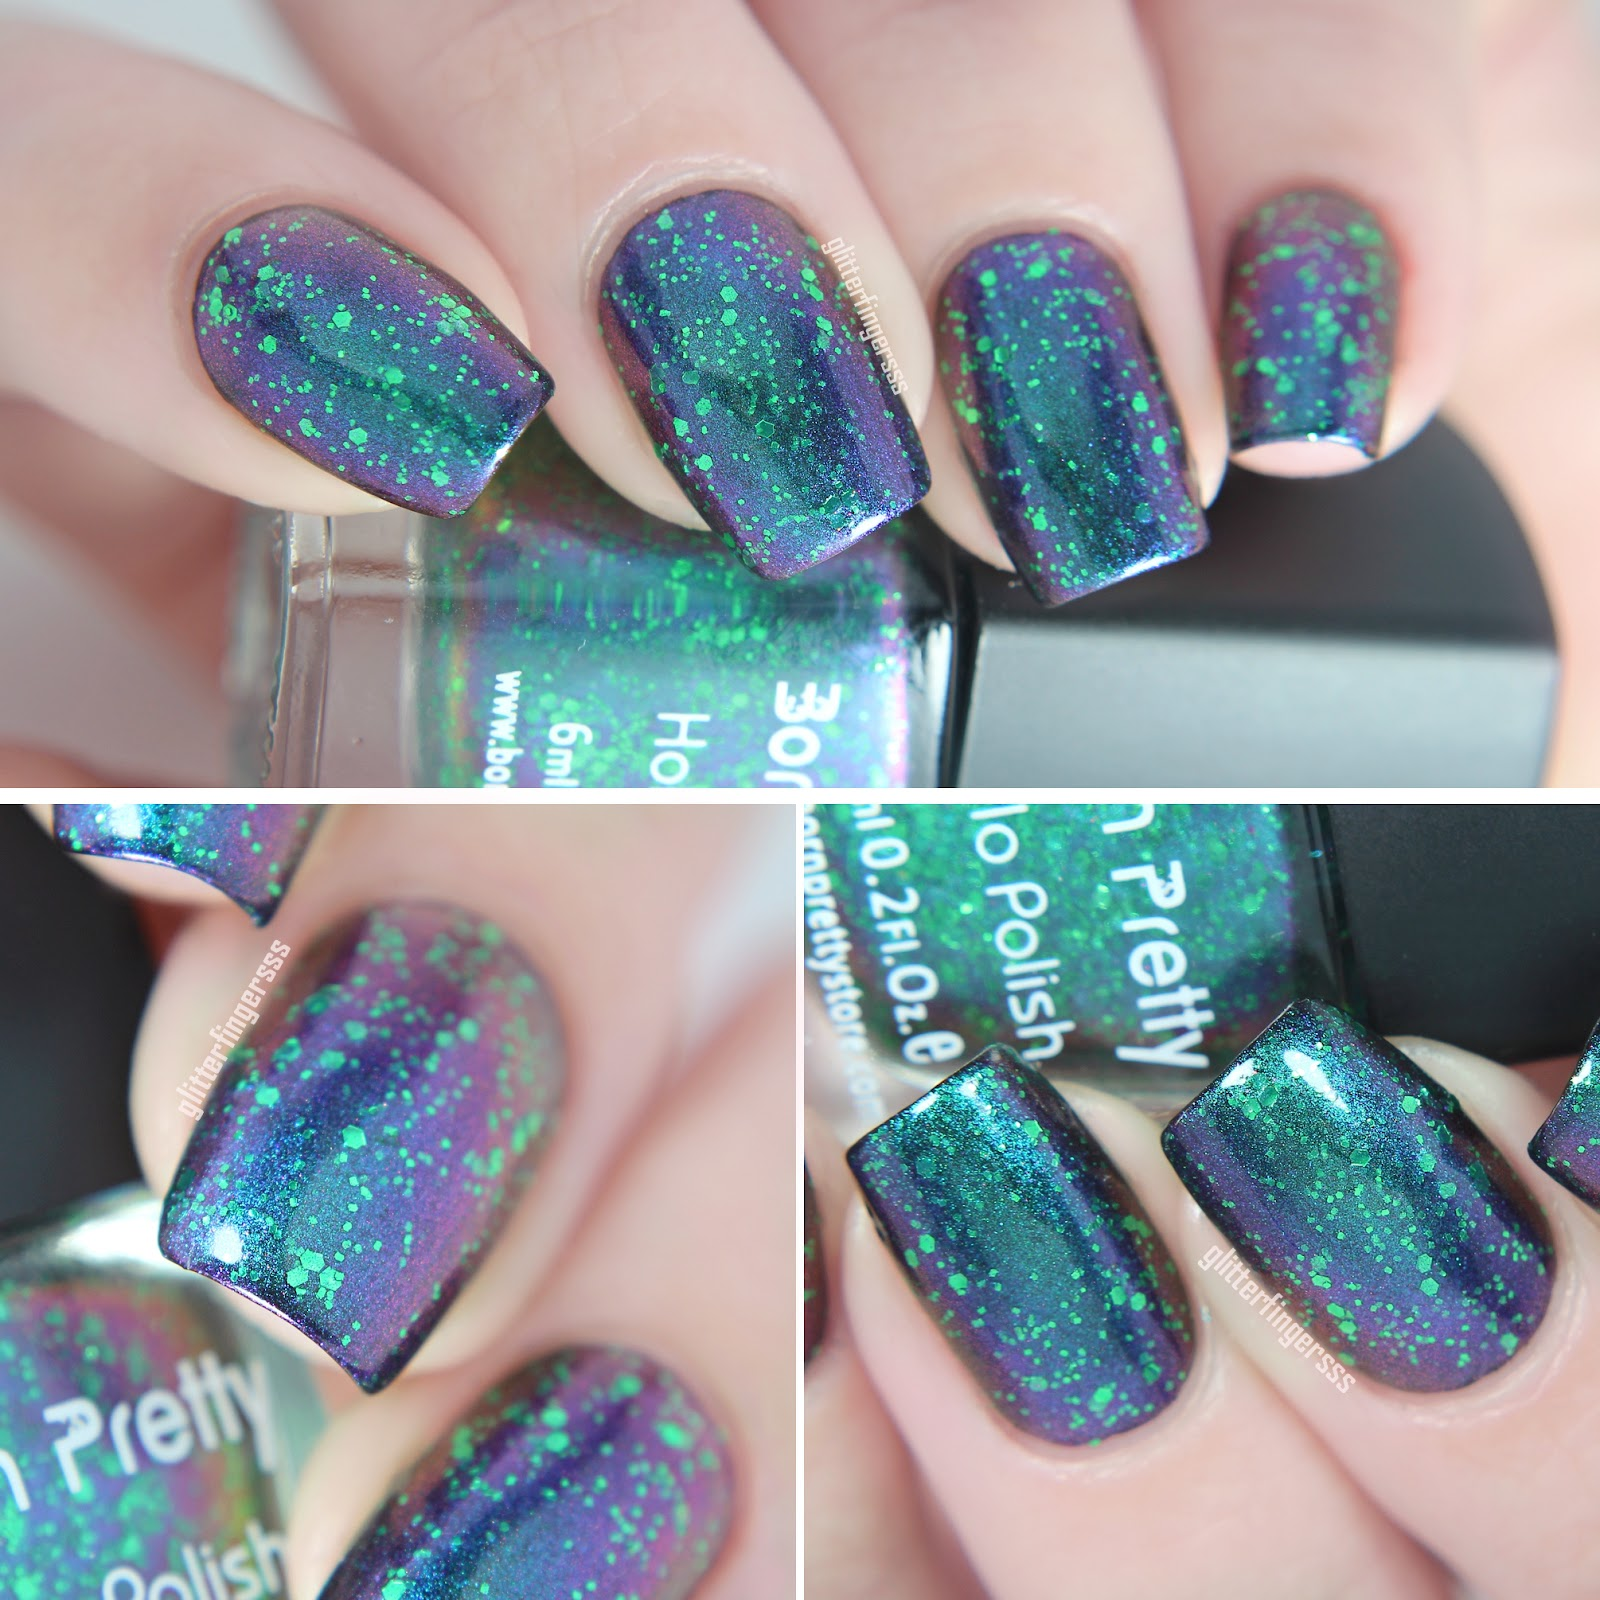 Born Pretty Store holo and chameleon nail polishes